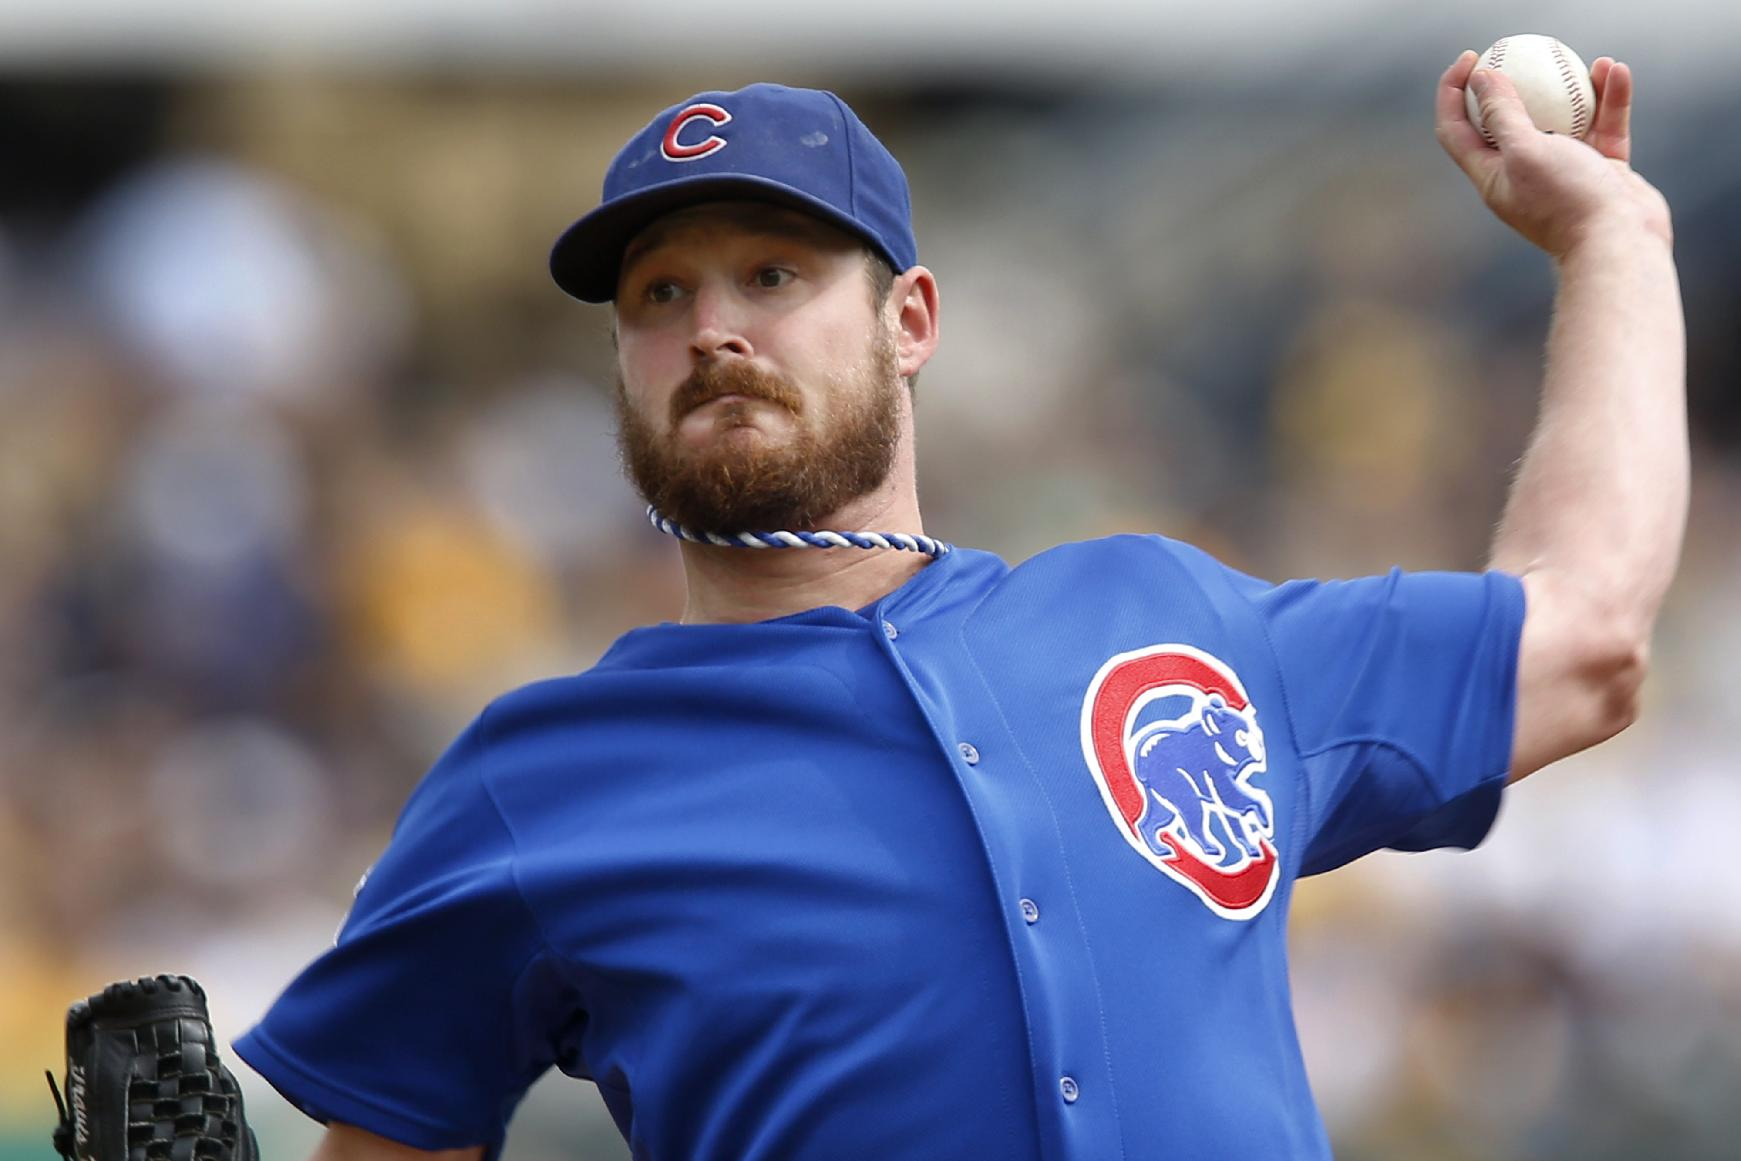 Chicago Cubs starting pitcher Travis Wood throws against the Pittsburgh Pirates in the first inning of a baseball game on Sunday, Sept. 15, 2013, in Pittsburgh